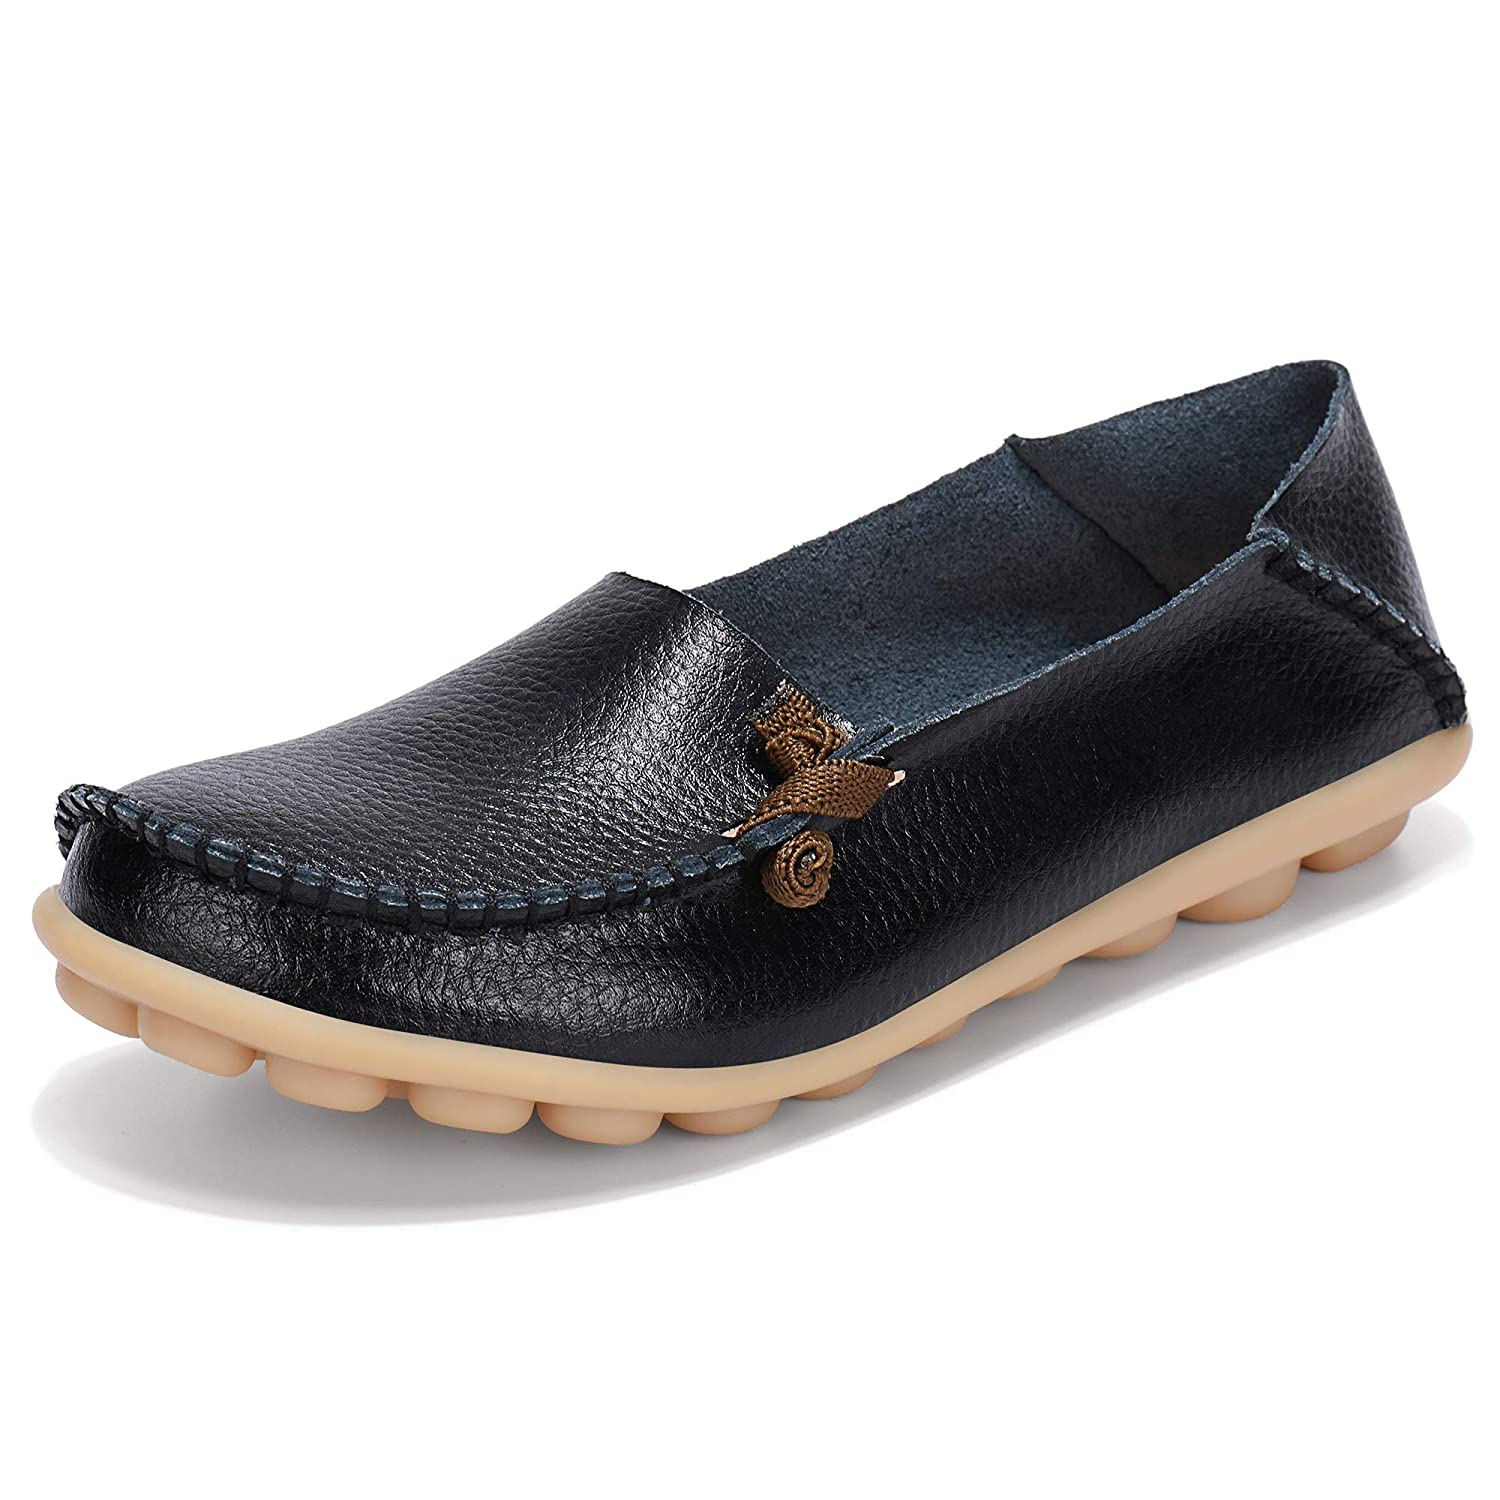 cdb6ac23801e8 Labato Women's Leather Loafers Breathable Slip on Driving Shoes Casual  Comfort Walking Flat Shoes